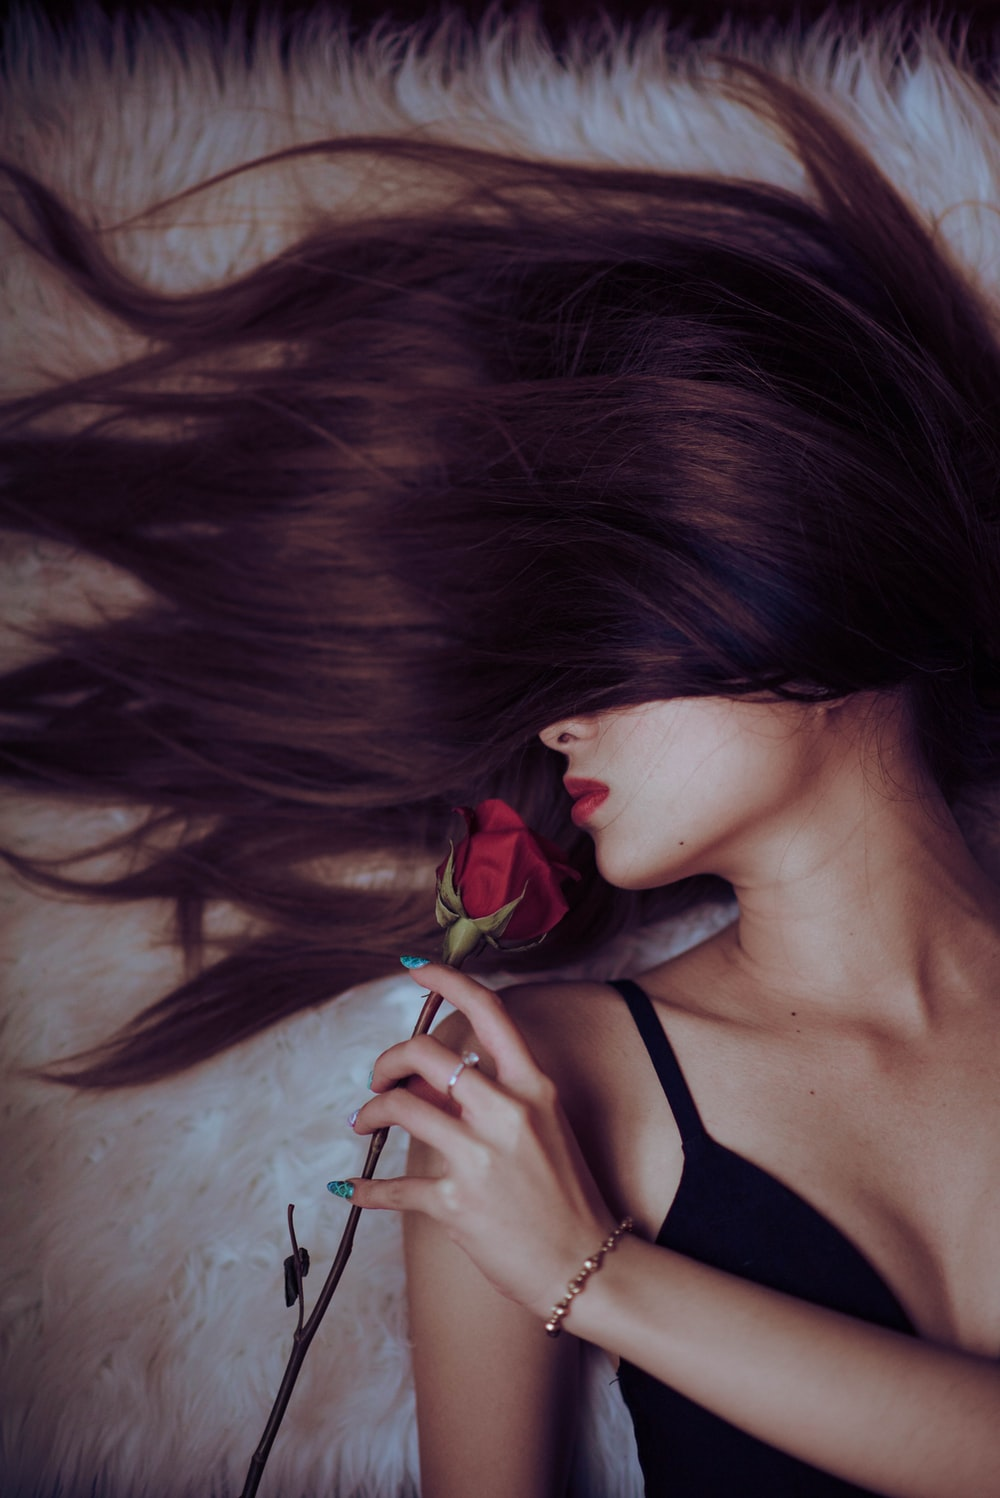 woman in black tank top holding red rose